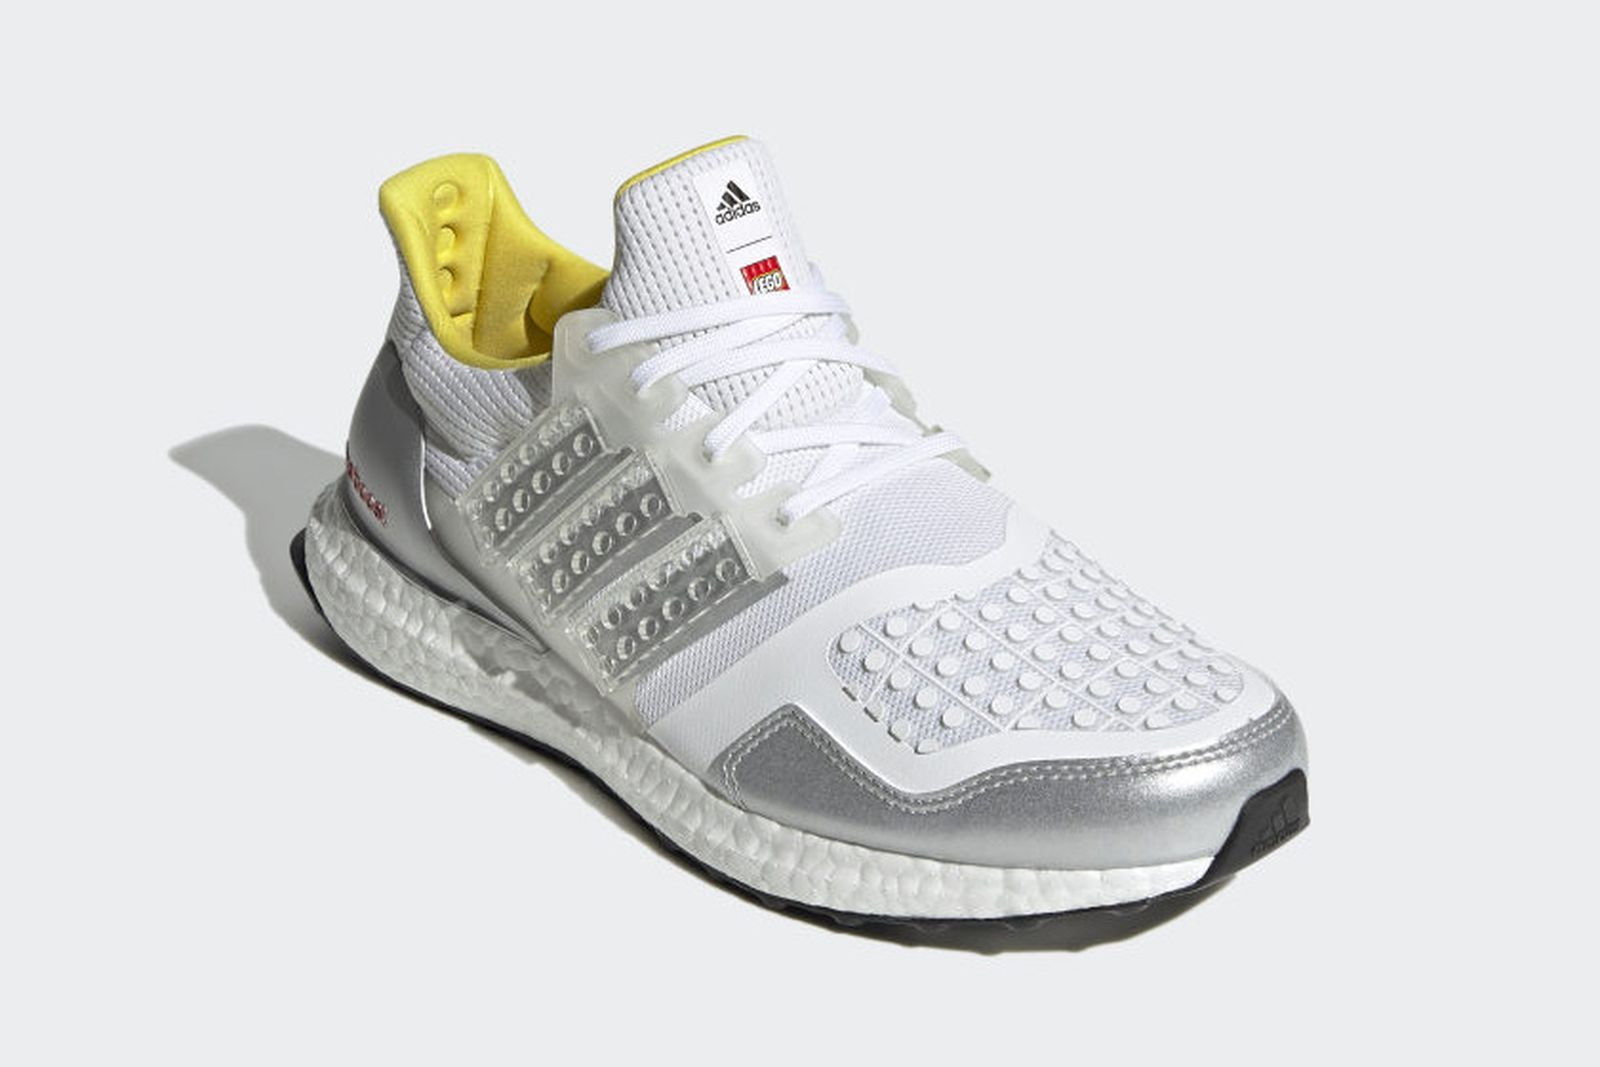 lego-adidas-ultraboost-dna-release-date-price-05